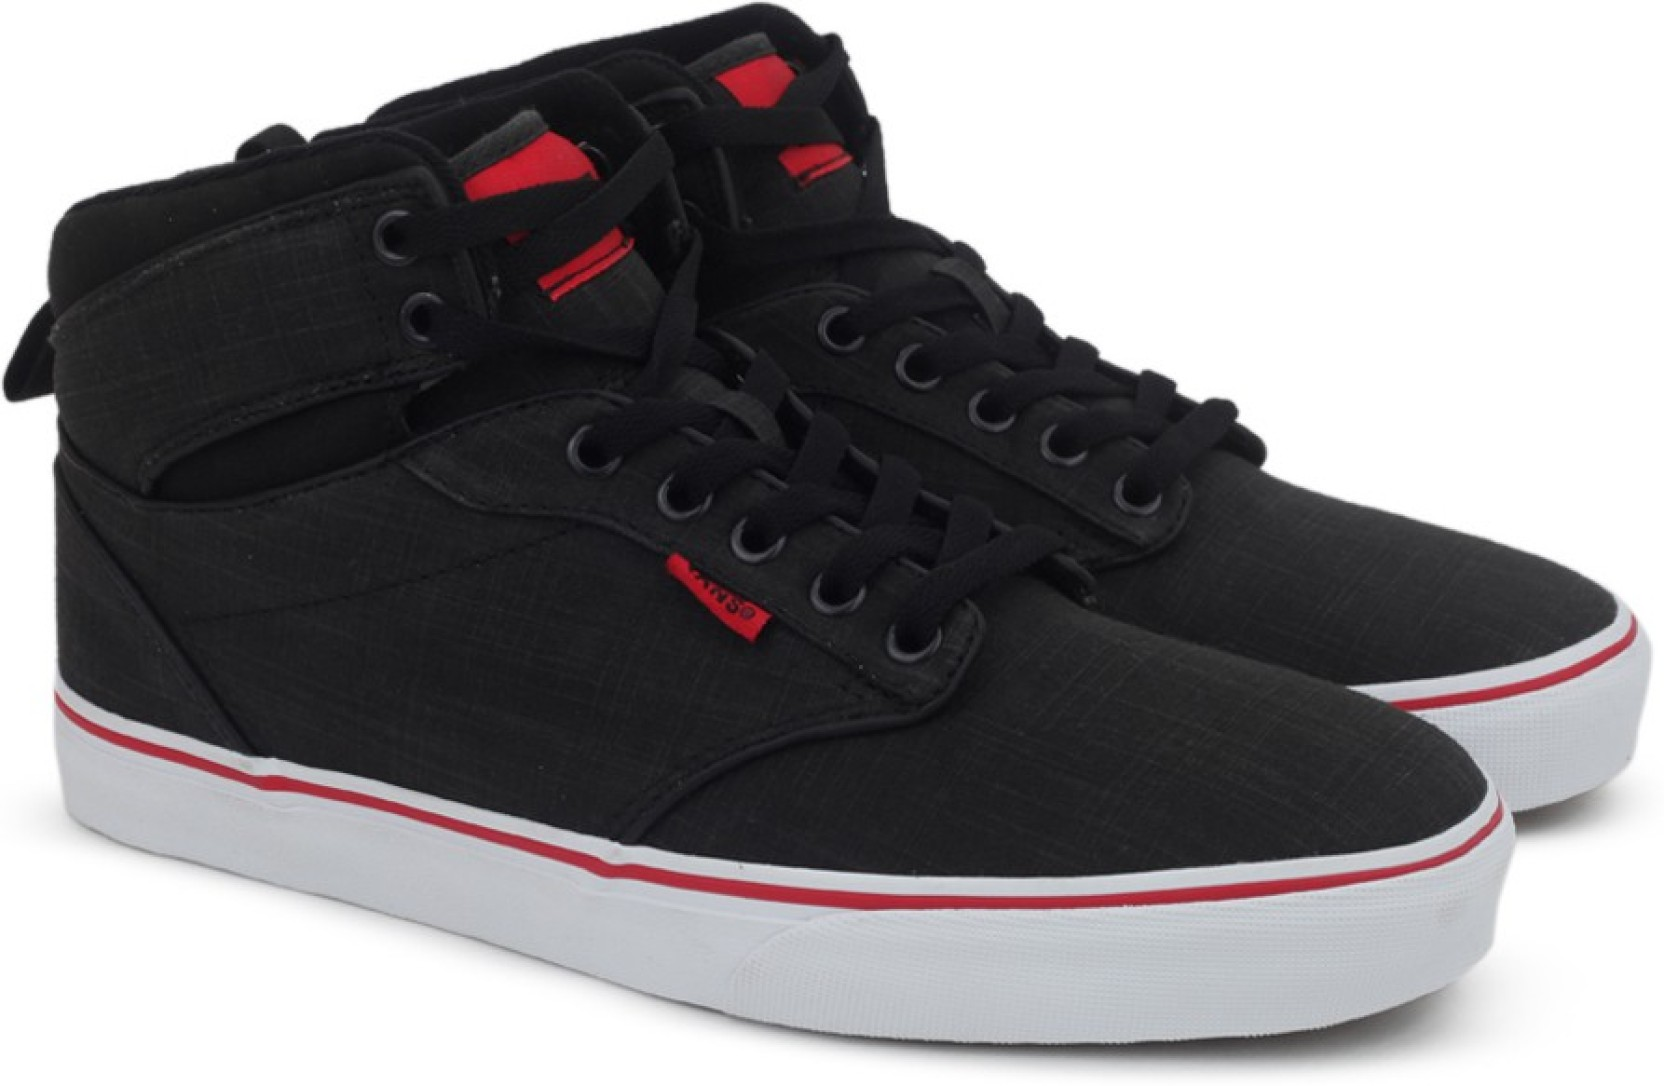 Vans ATWOOD HI High Ankle Sneakers For Men - Buy (ROCK TEXTILE ... 4a6aece22